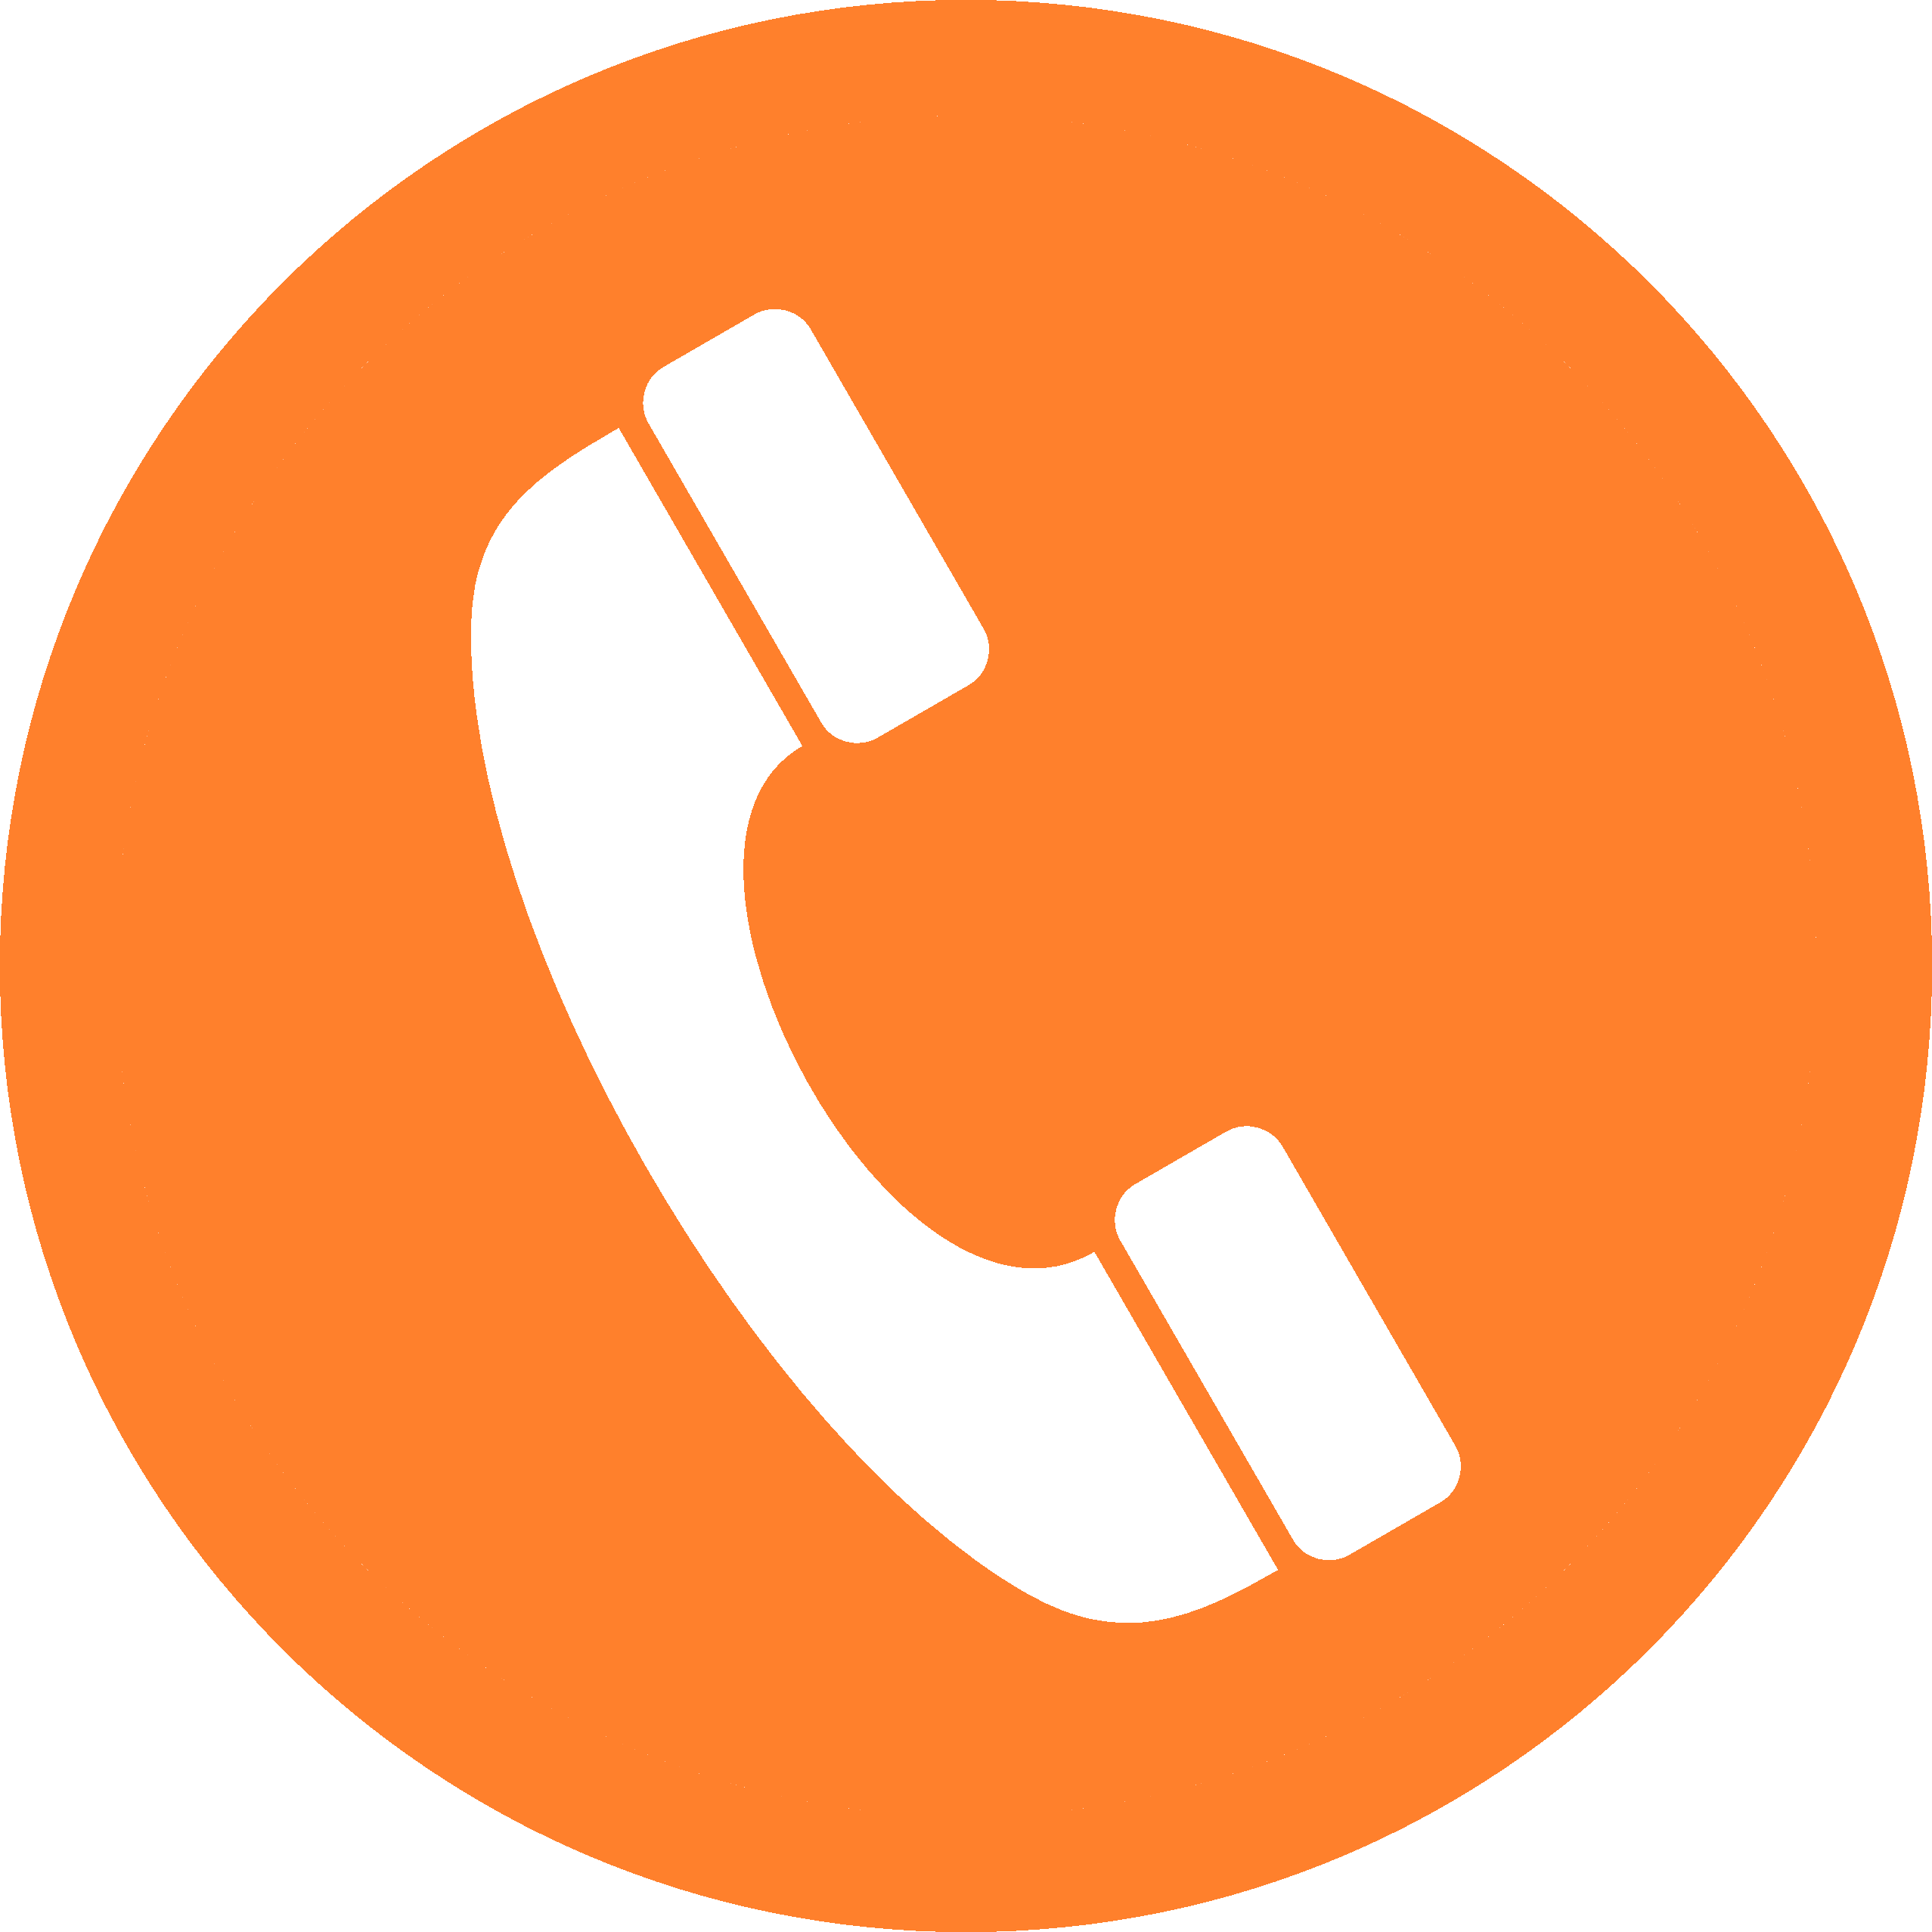 Phone Logo Png - ClipArt Best